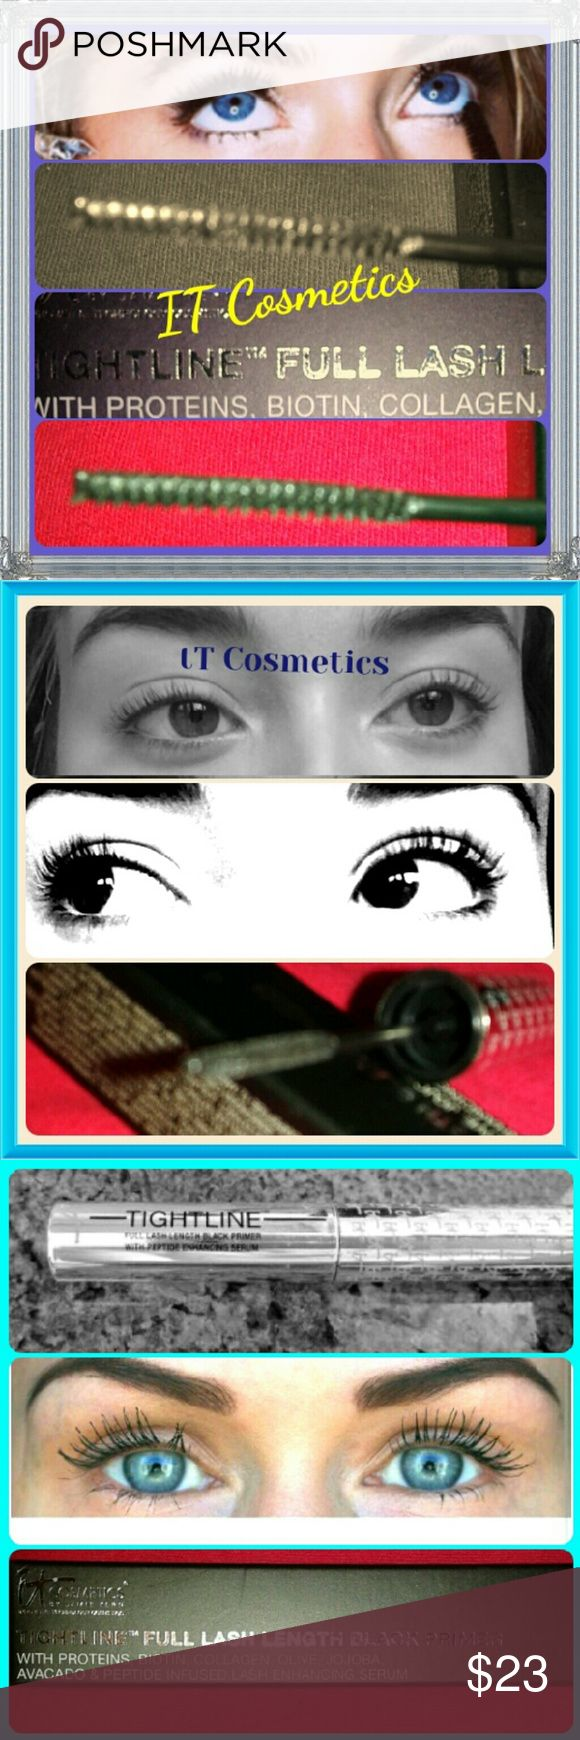 IT COSMETICS - Mascara IT -Cosmetics- MASCARA-TIGHT LINE With PRIMER/FULL LENGTH//BLACK COLOR/Reason for word Tight line  Is it Gets Deep To Root of Lashes and Small or Baby Lashes to Bring To Surface Huge Thick ,Longer Lash and No Clumps. On It Web-And Similar Stores  $25-29/ New Never been Used/  Final Sale it Cosmetics  Makeup Mascara